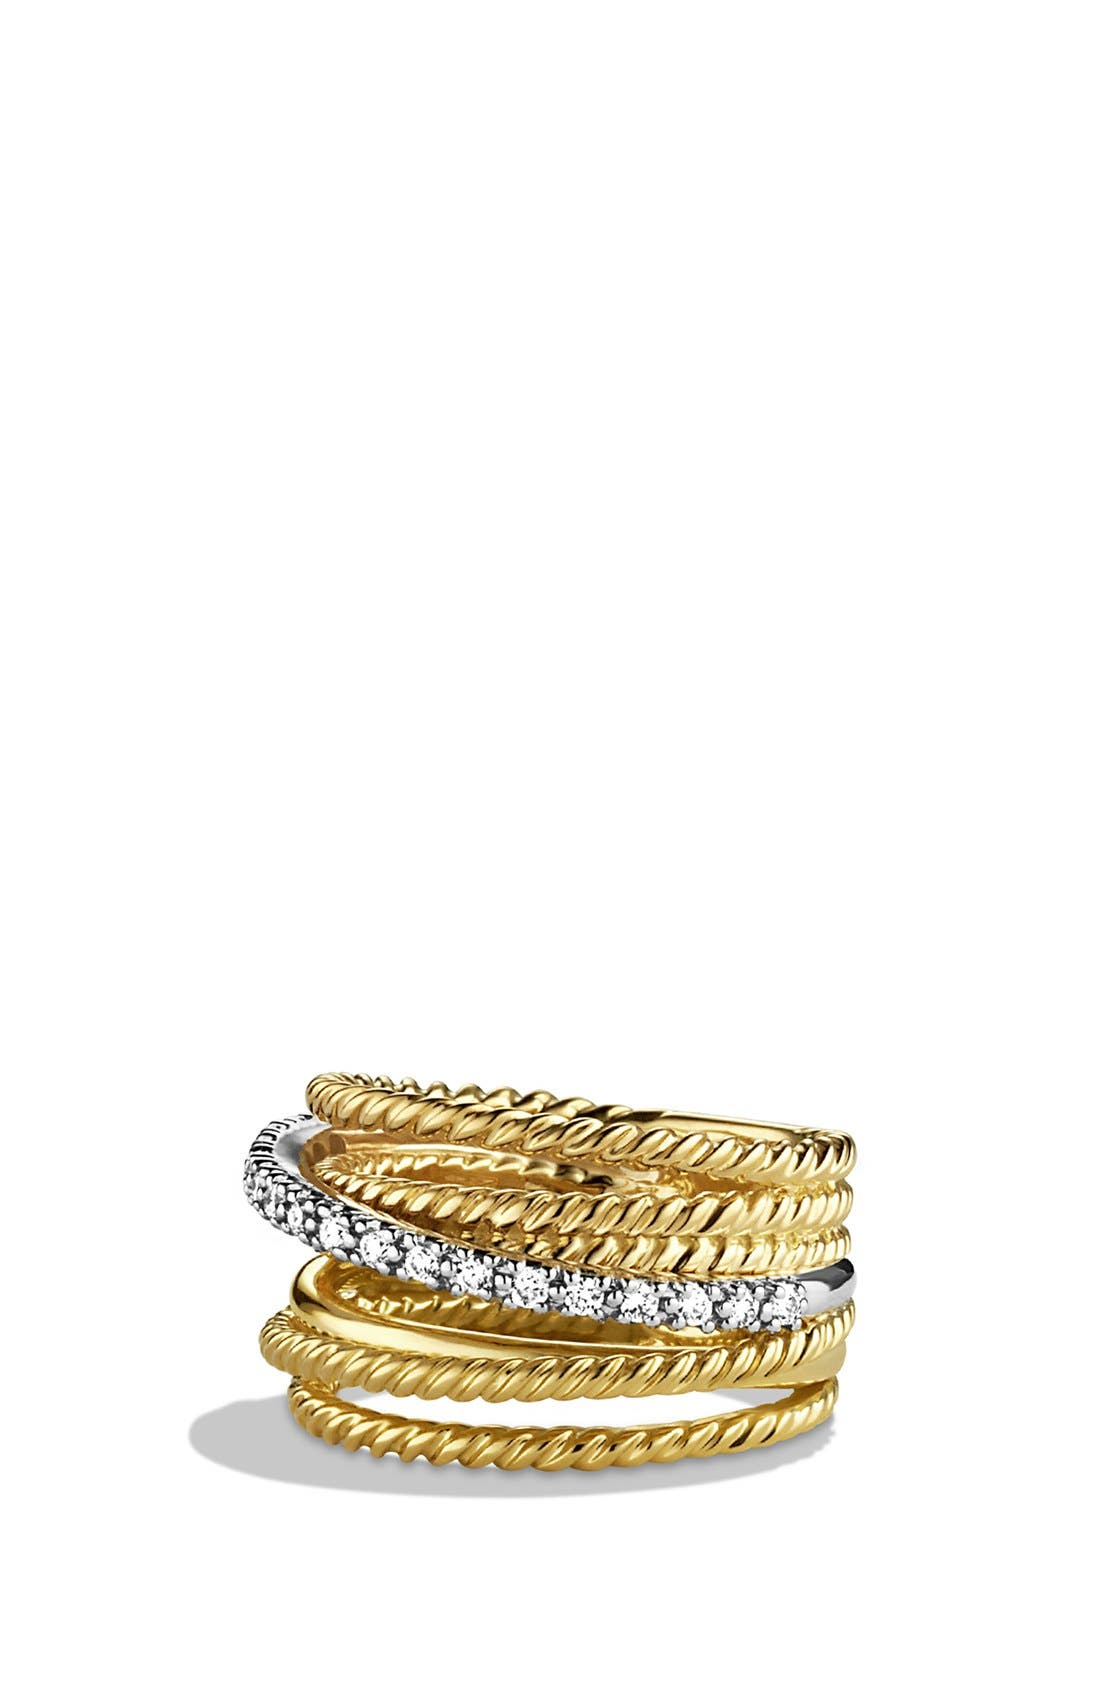 DAVID YURMAN DY Crossover Ring with Diamonds in Gold